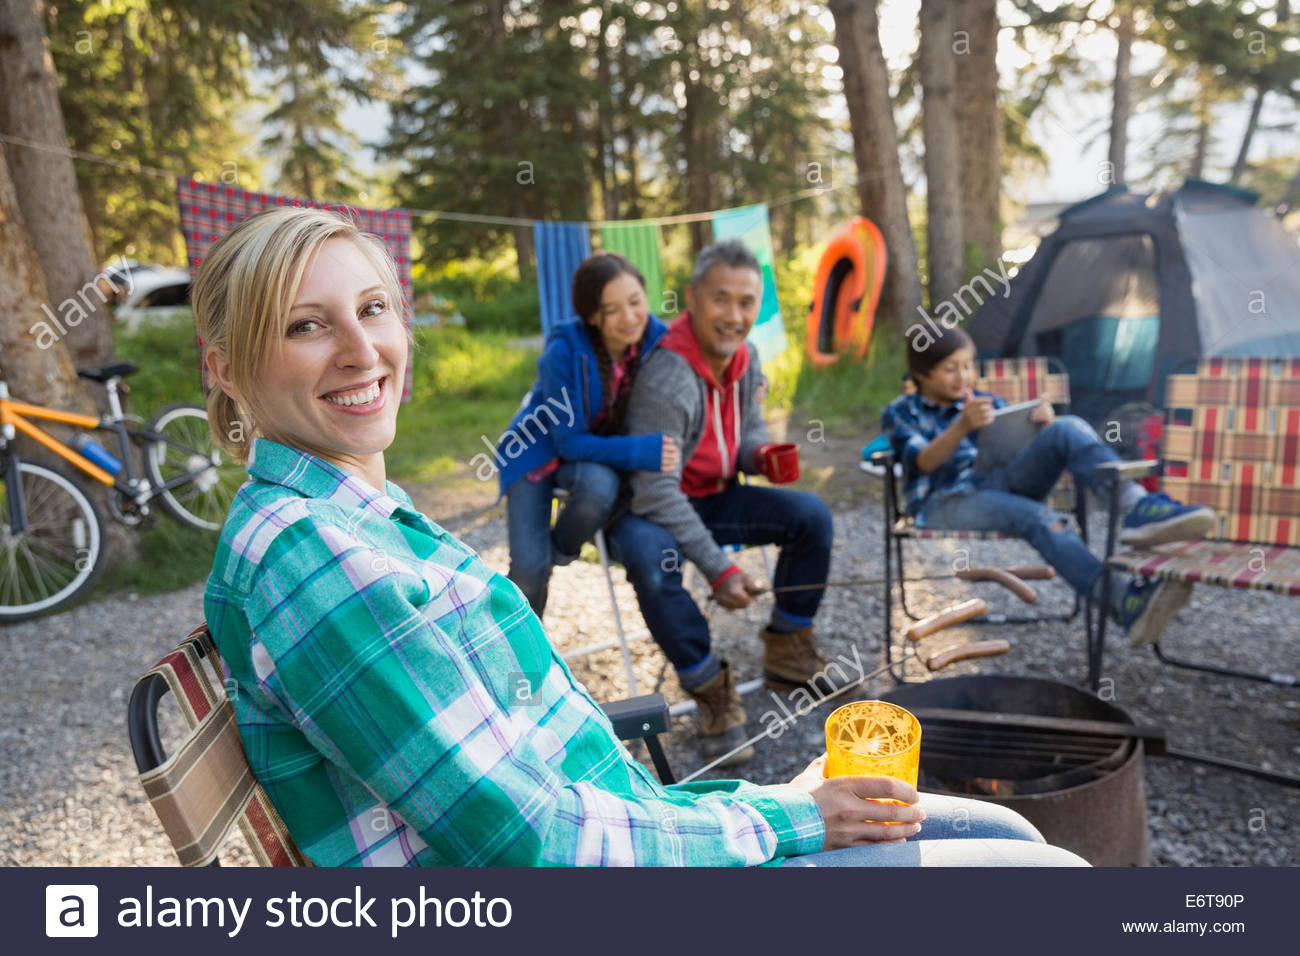 Family relaxing together around campfire - Stock Image